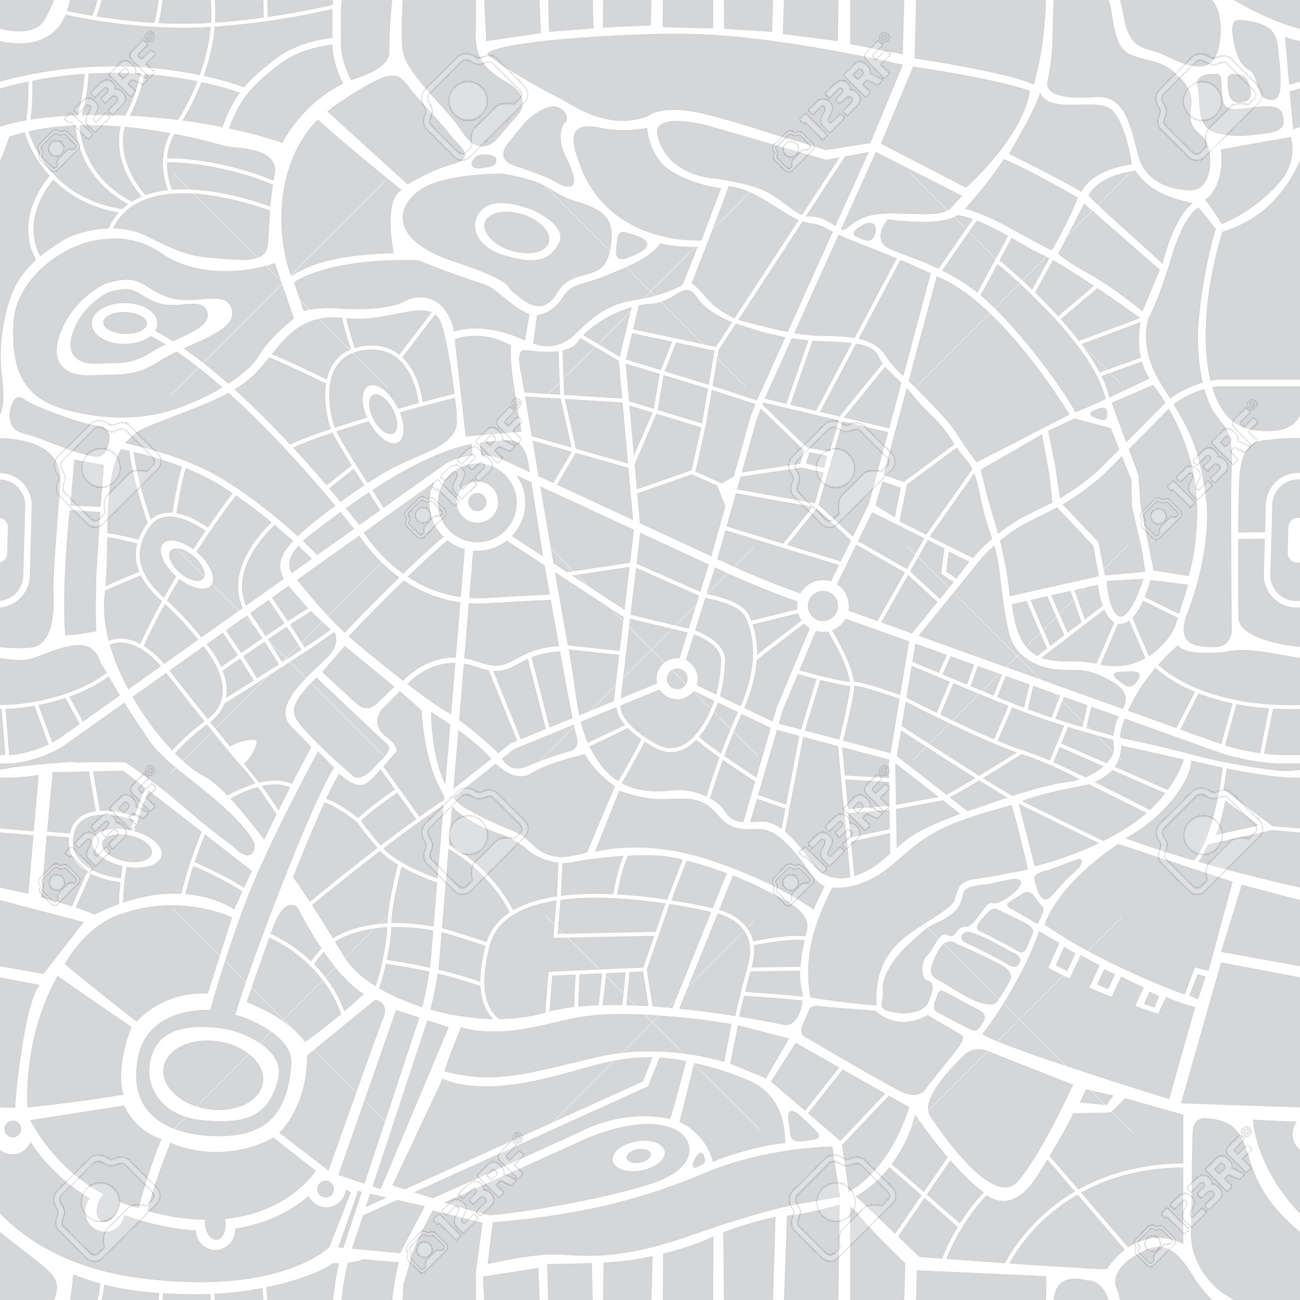 Seamless city map pattern. Vector repeating background with a schematic road map of an abstract city on a gray backdrop. Decorative urban texture, suitable for wallpaper design, wrapping paper, fabric - 169021320